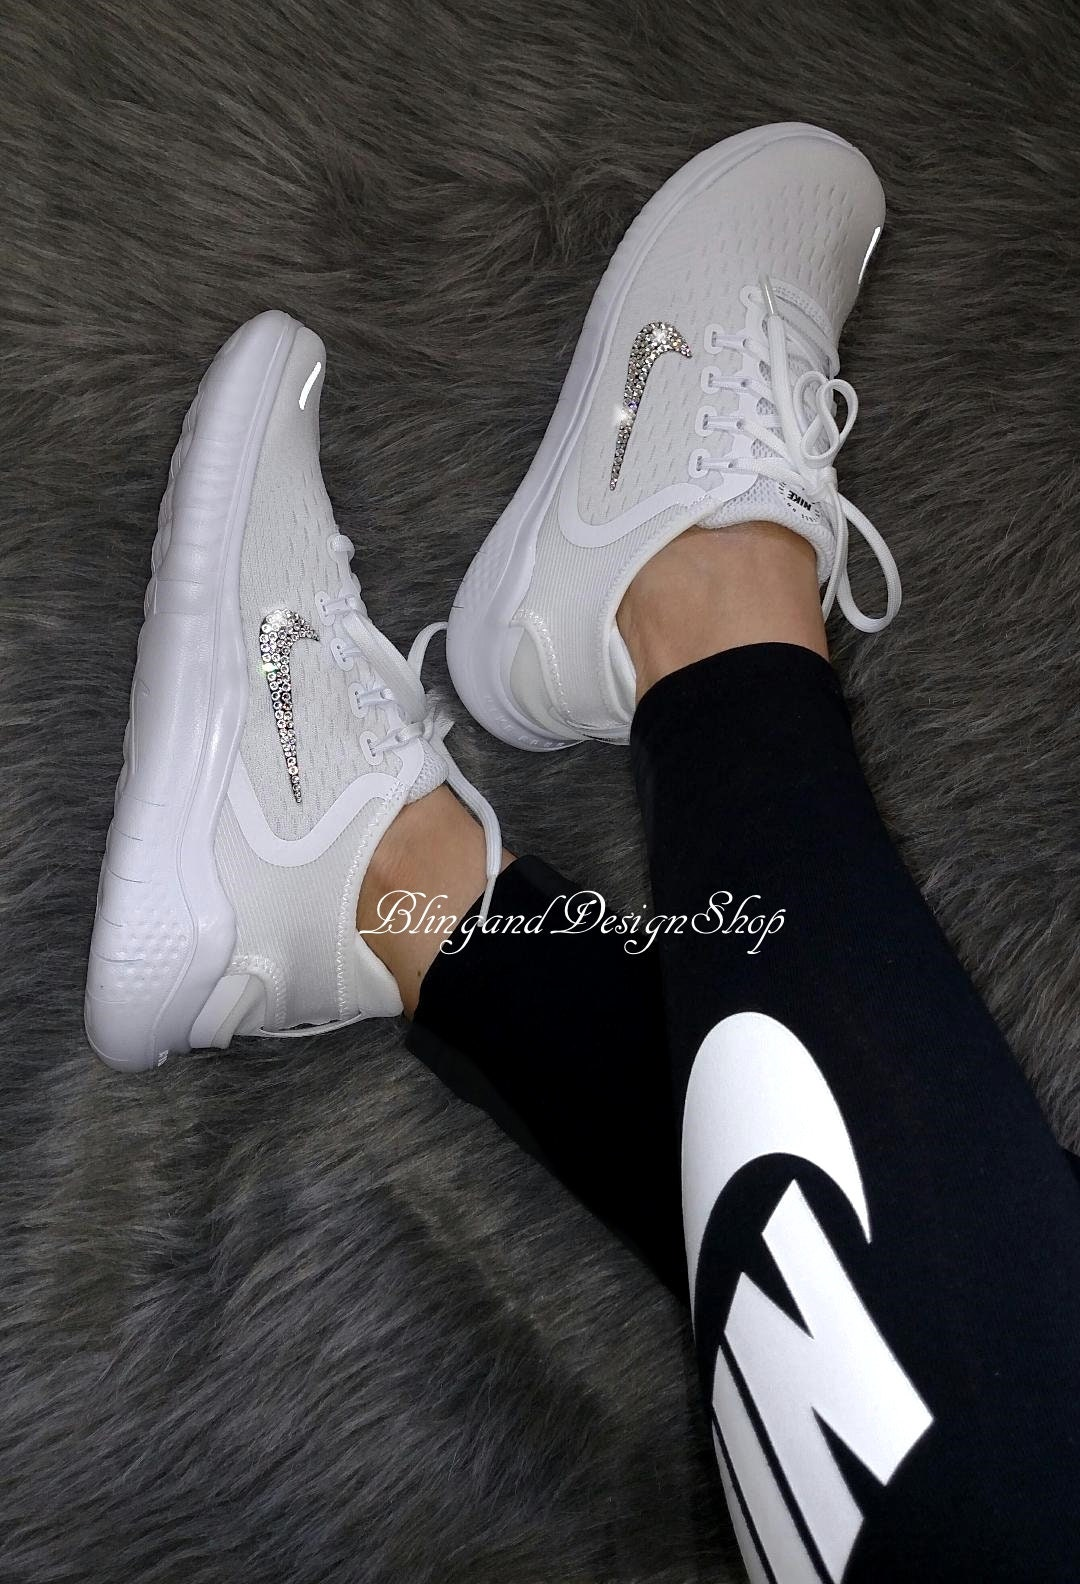 Swarovski Bling Nike Shoes Free RN 2018 Womens Nike Shoes Custom with Crystal  Rhinestones Bling Nike Shoes 71b06d5b7